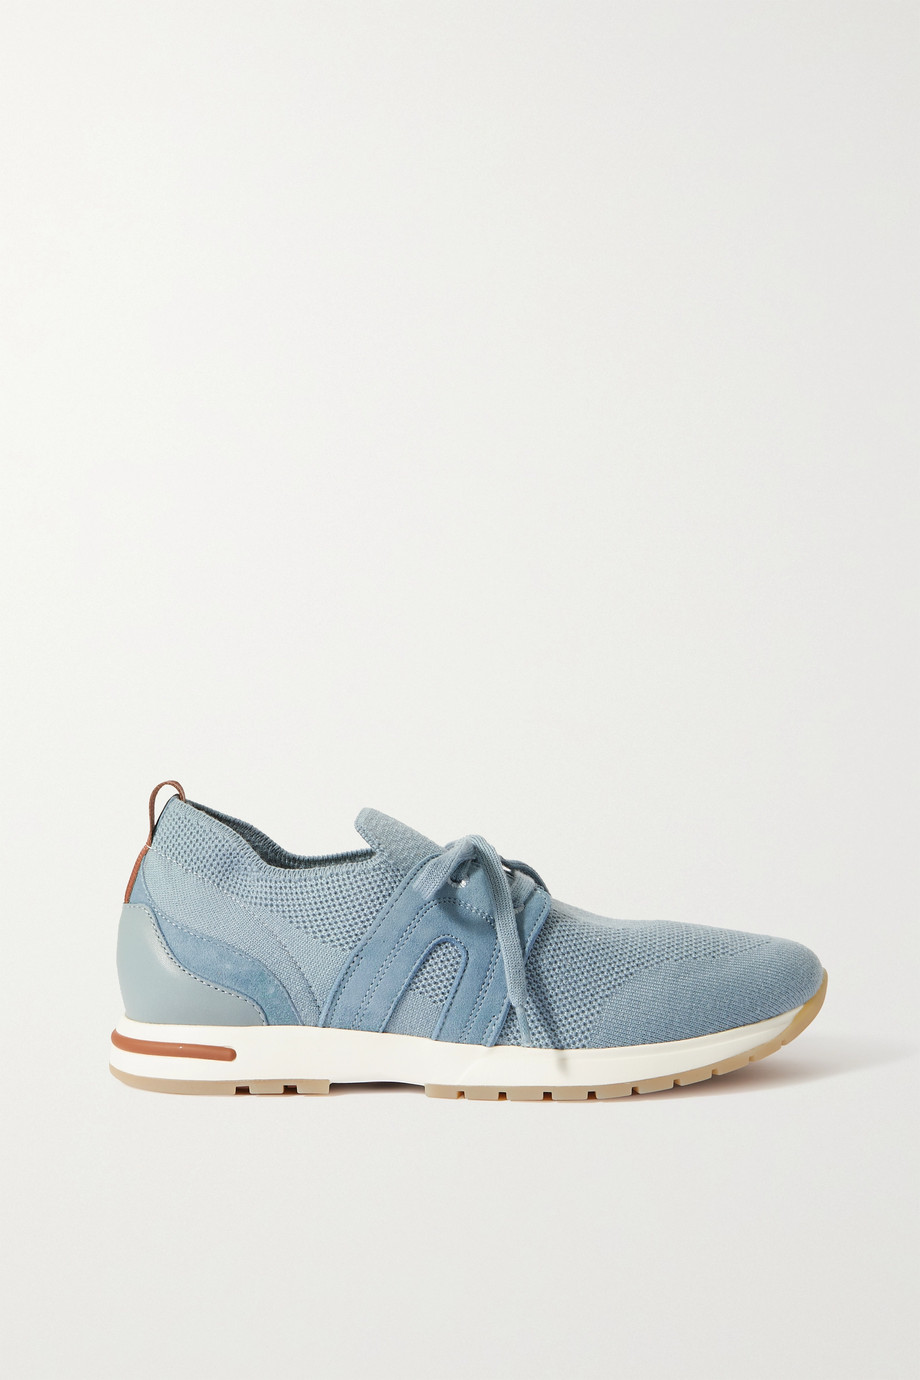 Loro Piana 360 Lp Flexy Walk suede and leather-trimmed wool sneakers